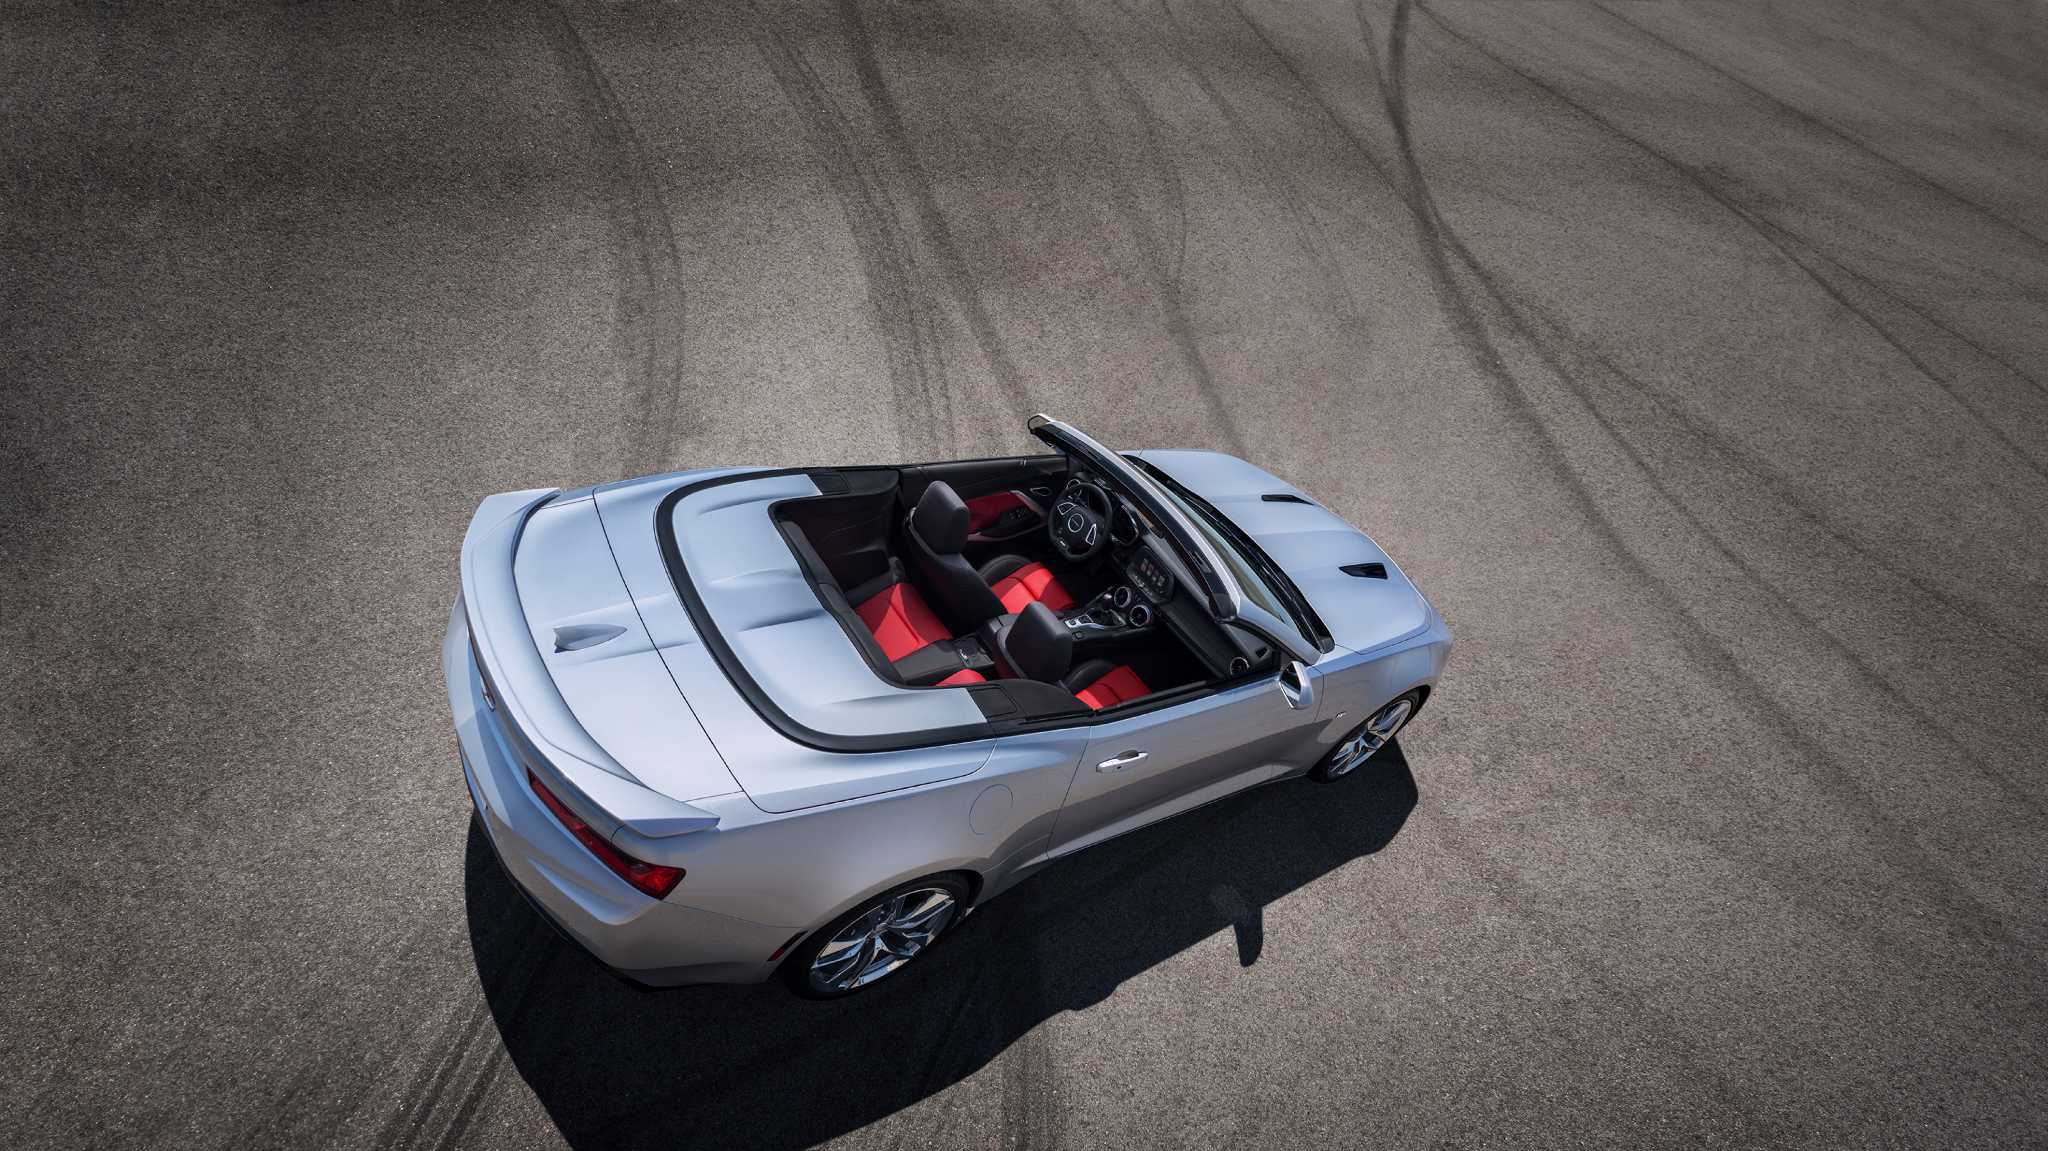 Chevrolet pulls the curtain back on the 2016 convertible Camaro